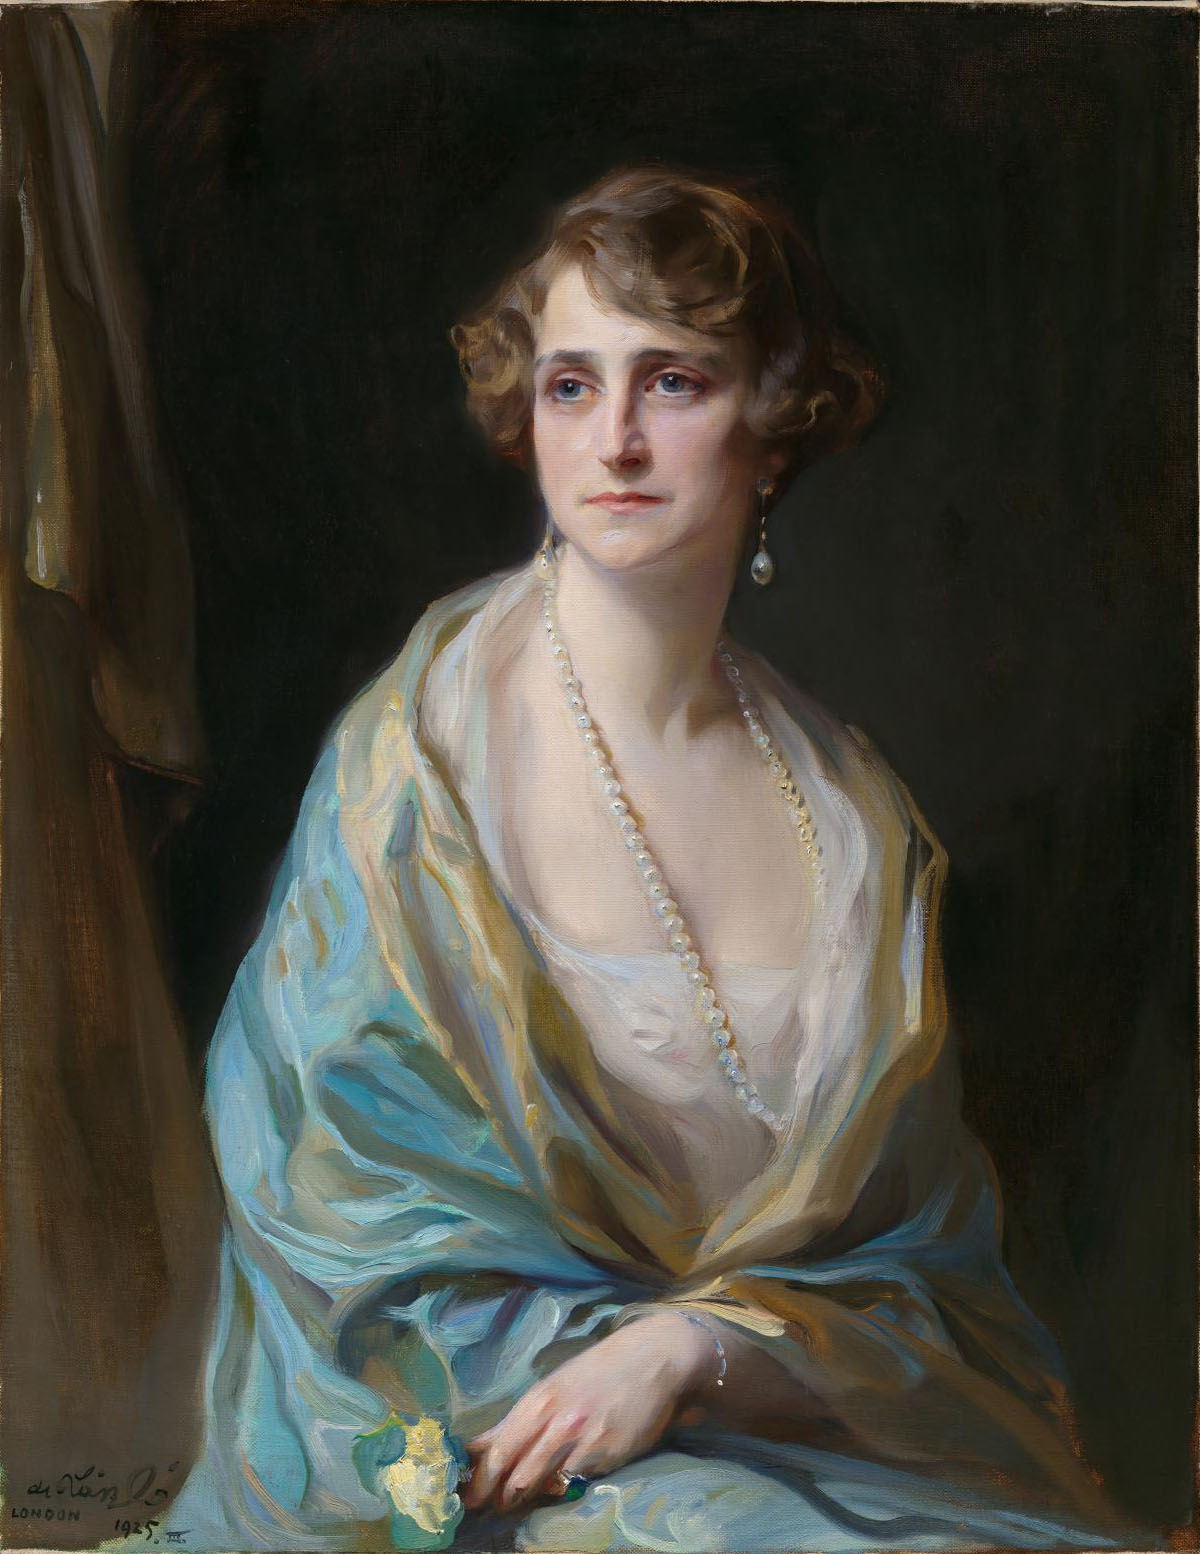 https://upload.wikimedia.org/wikipedia/commons/f/f5/Clarice_de_Rothschild.jpg